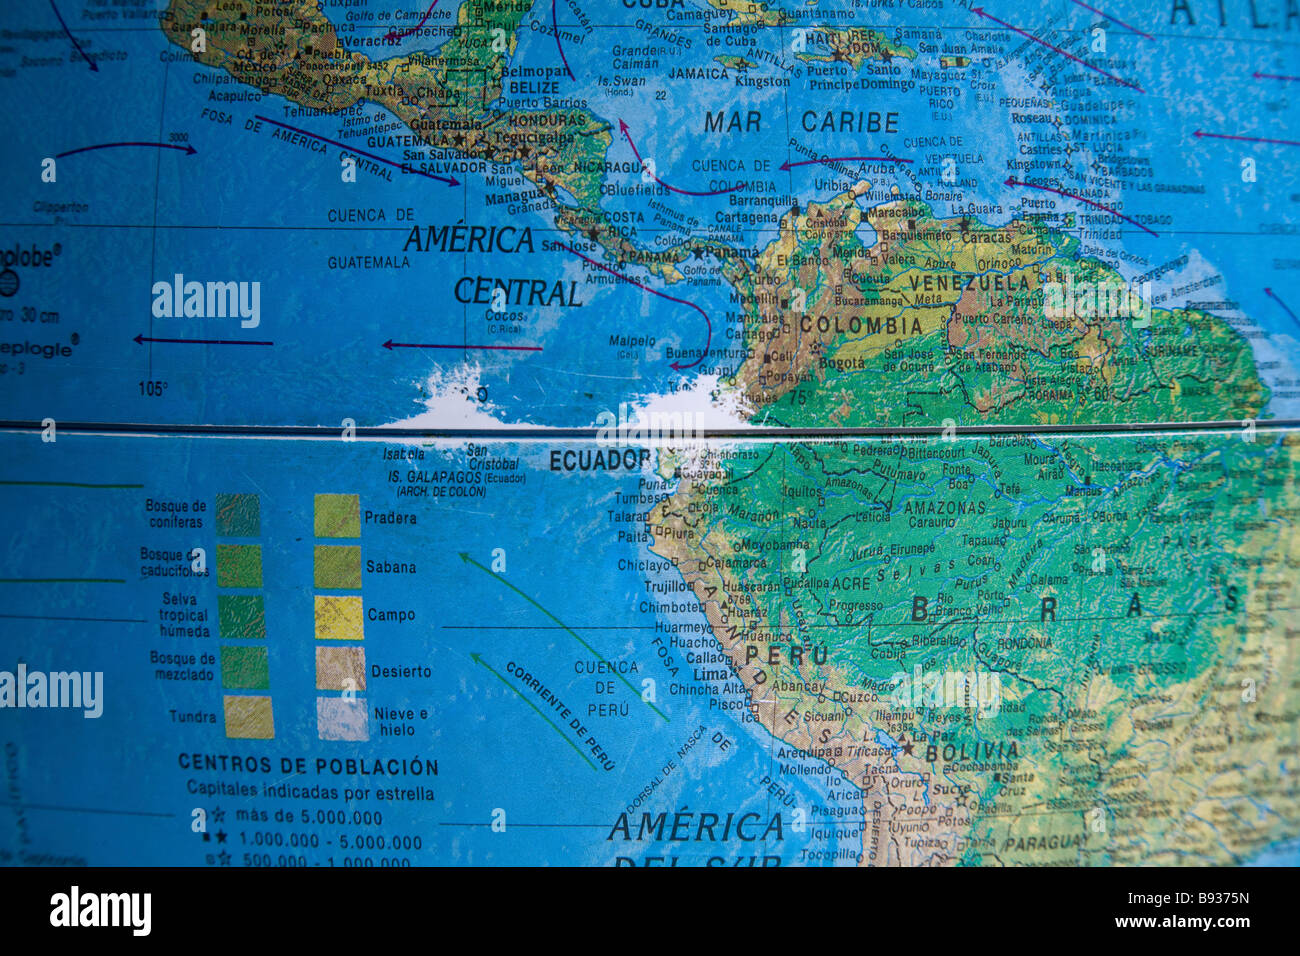 Middle of the Earth globe, Museo Solar Inti Nan on the 'real equator', Quito district, Ecuador - Stock Image